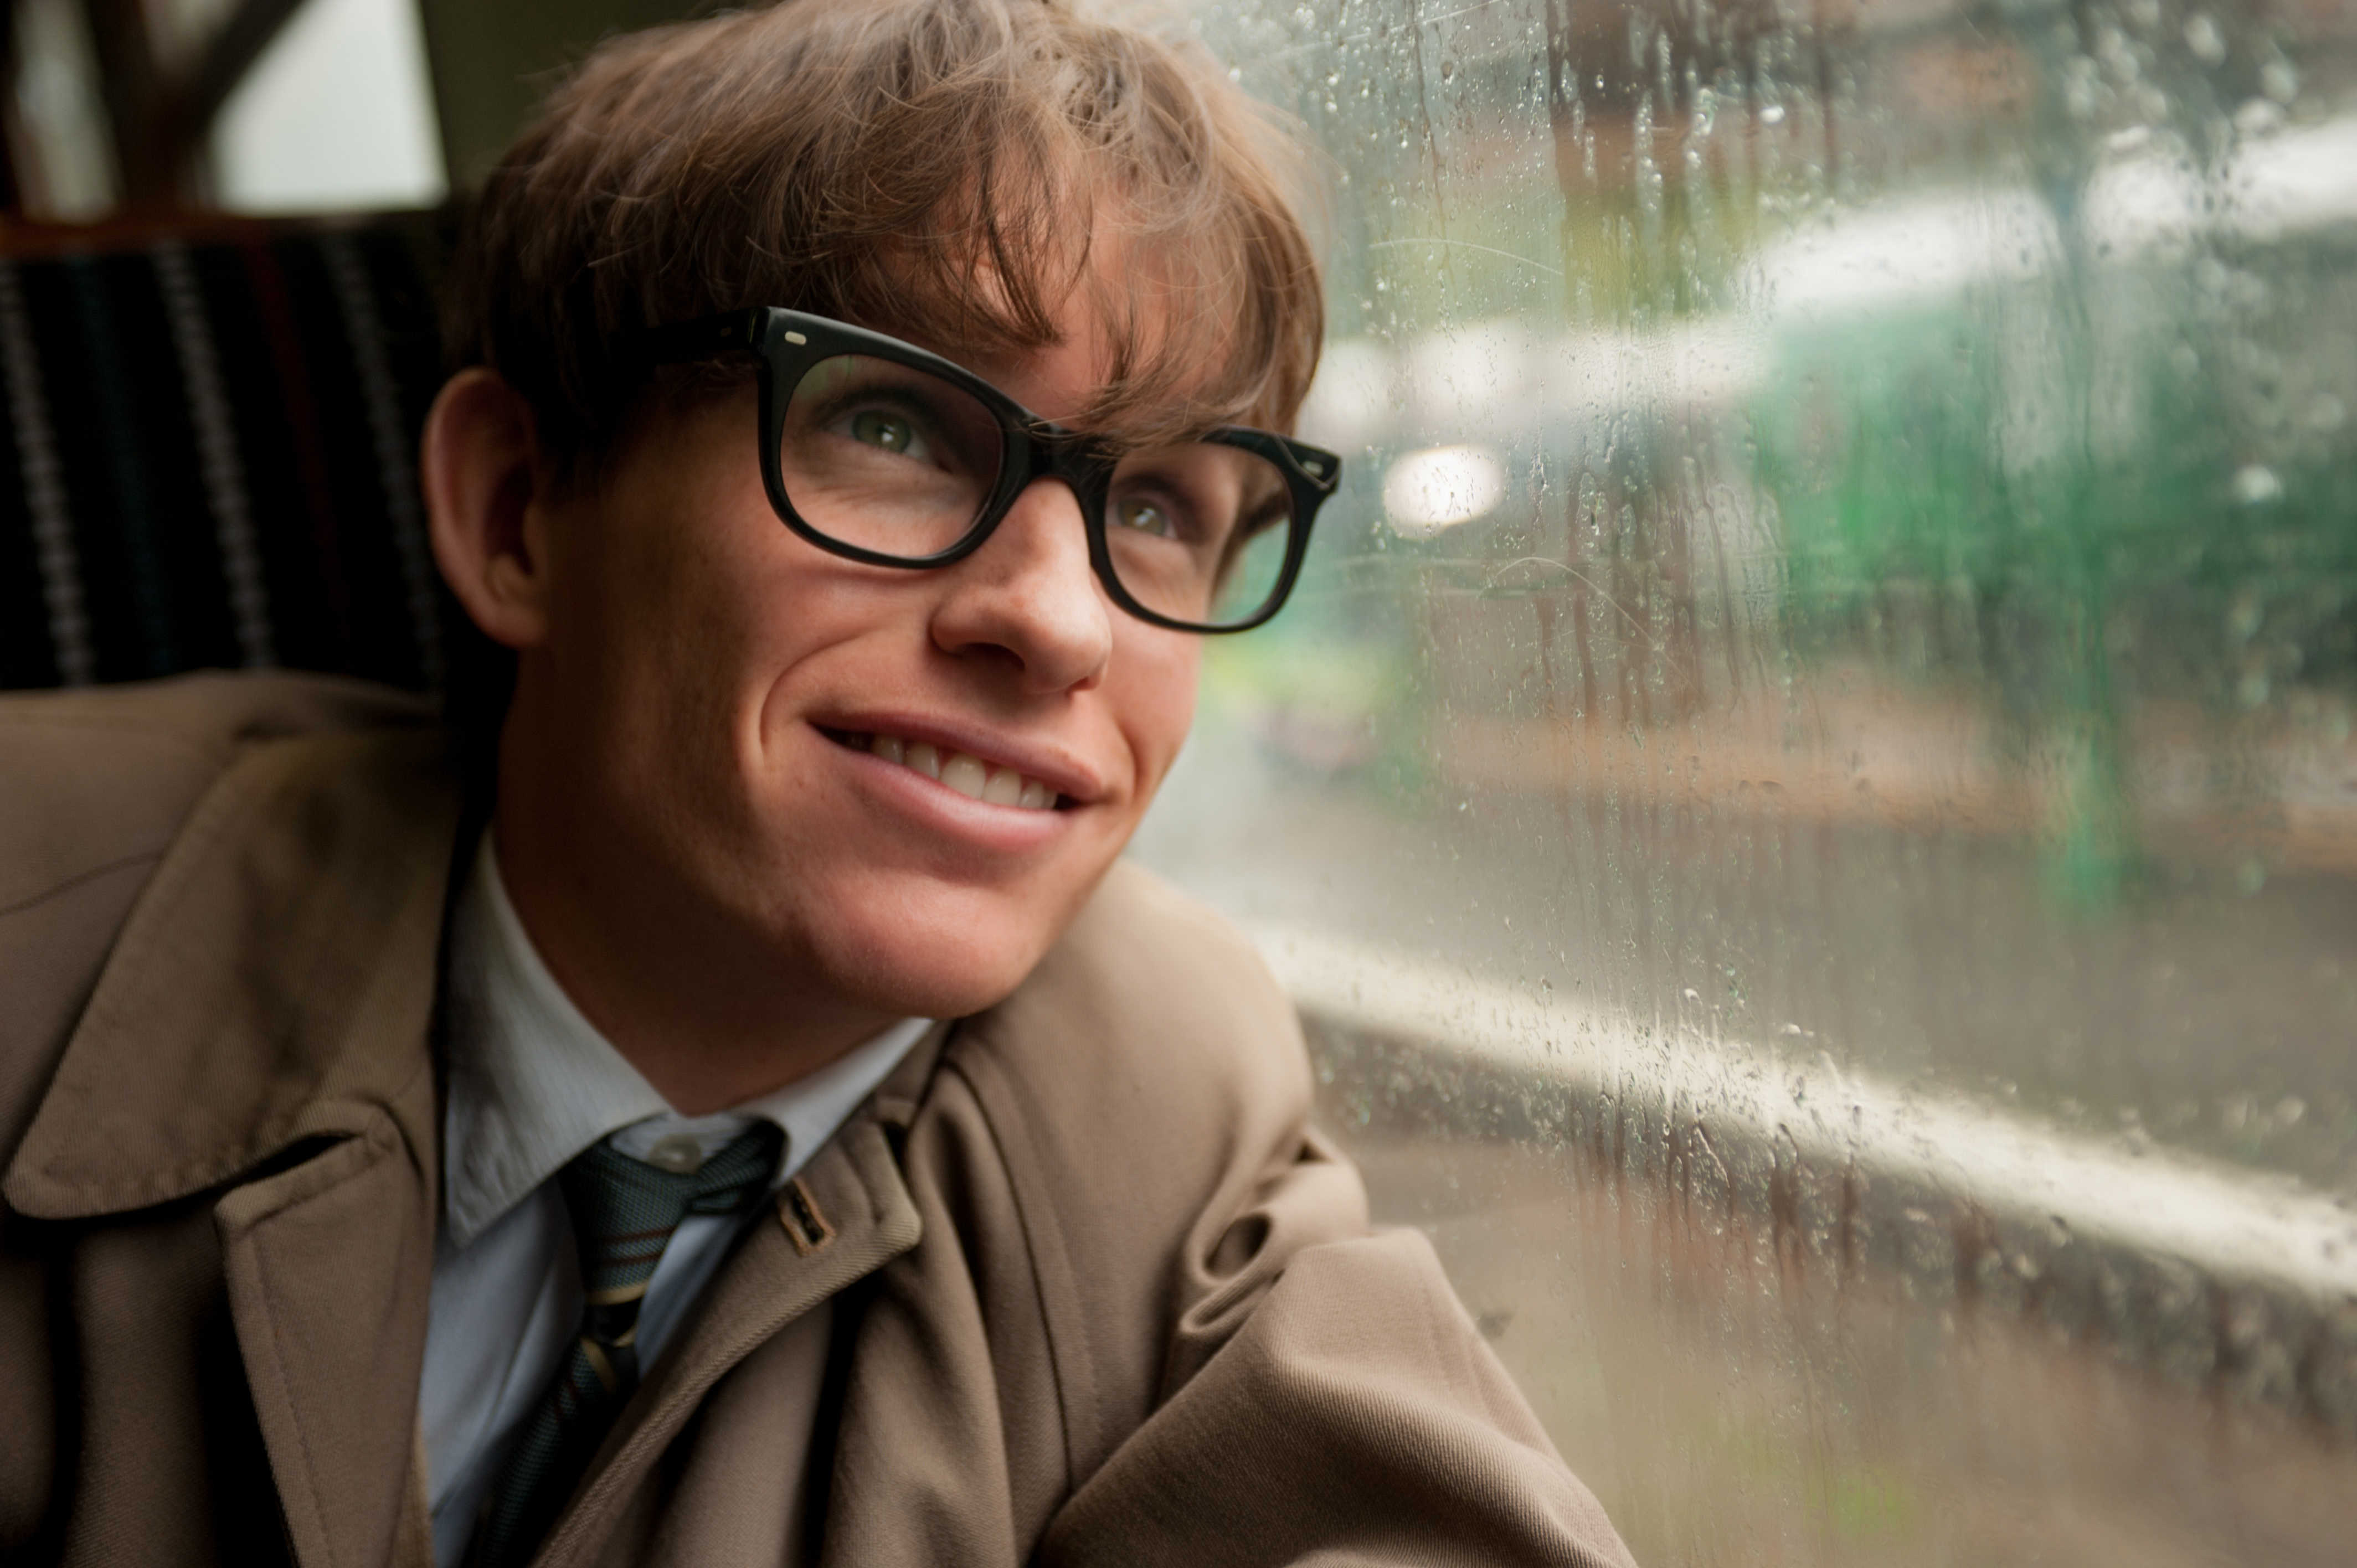 Eddie Redmayne gives a captivating performance as an afflicted genius. Photo used with permission from Focus Features.